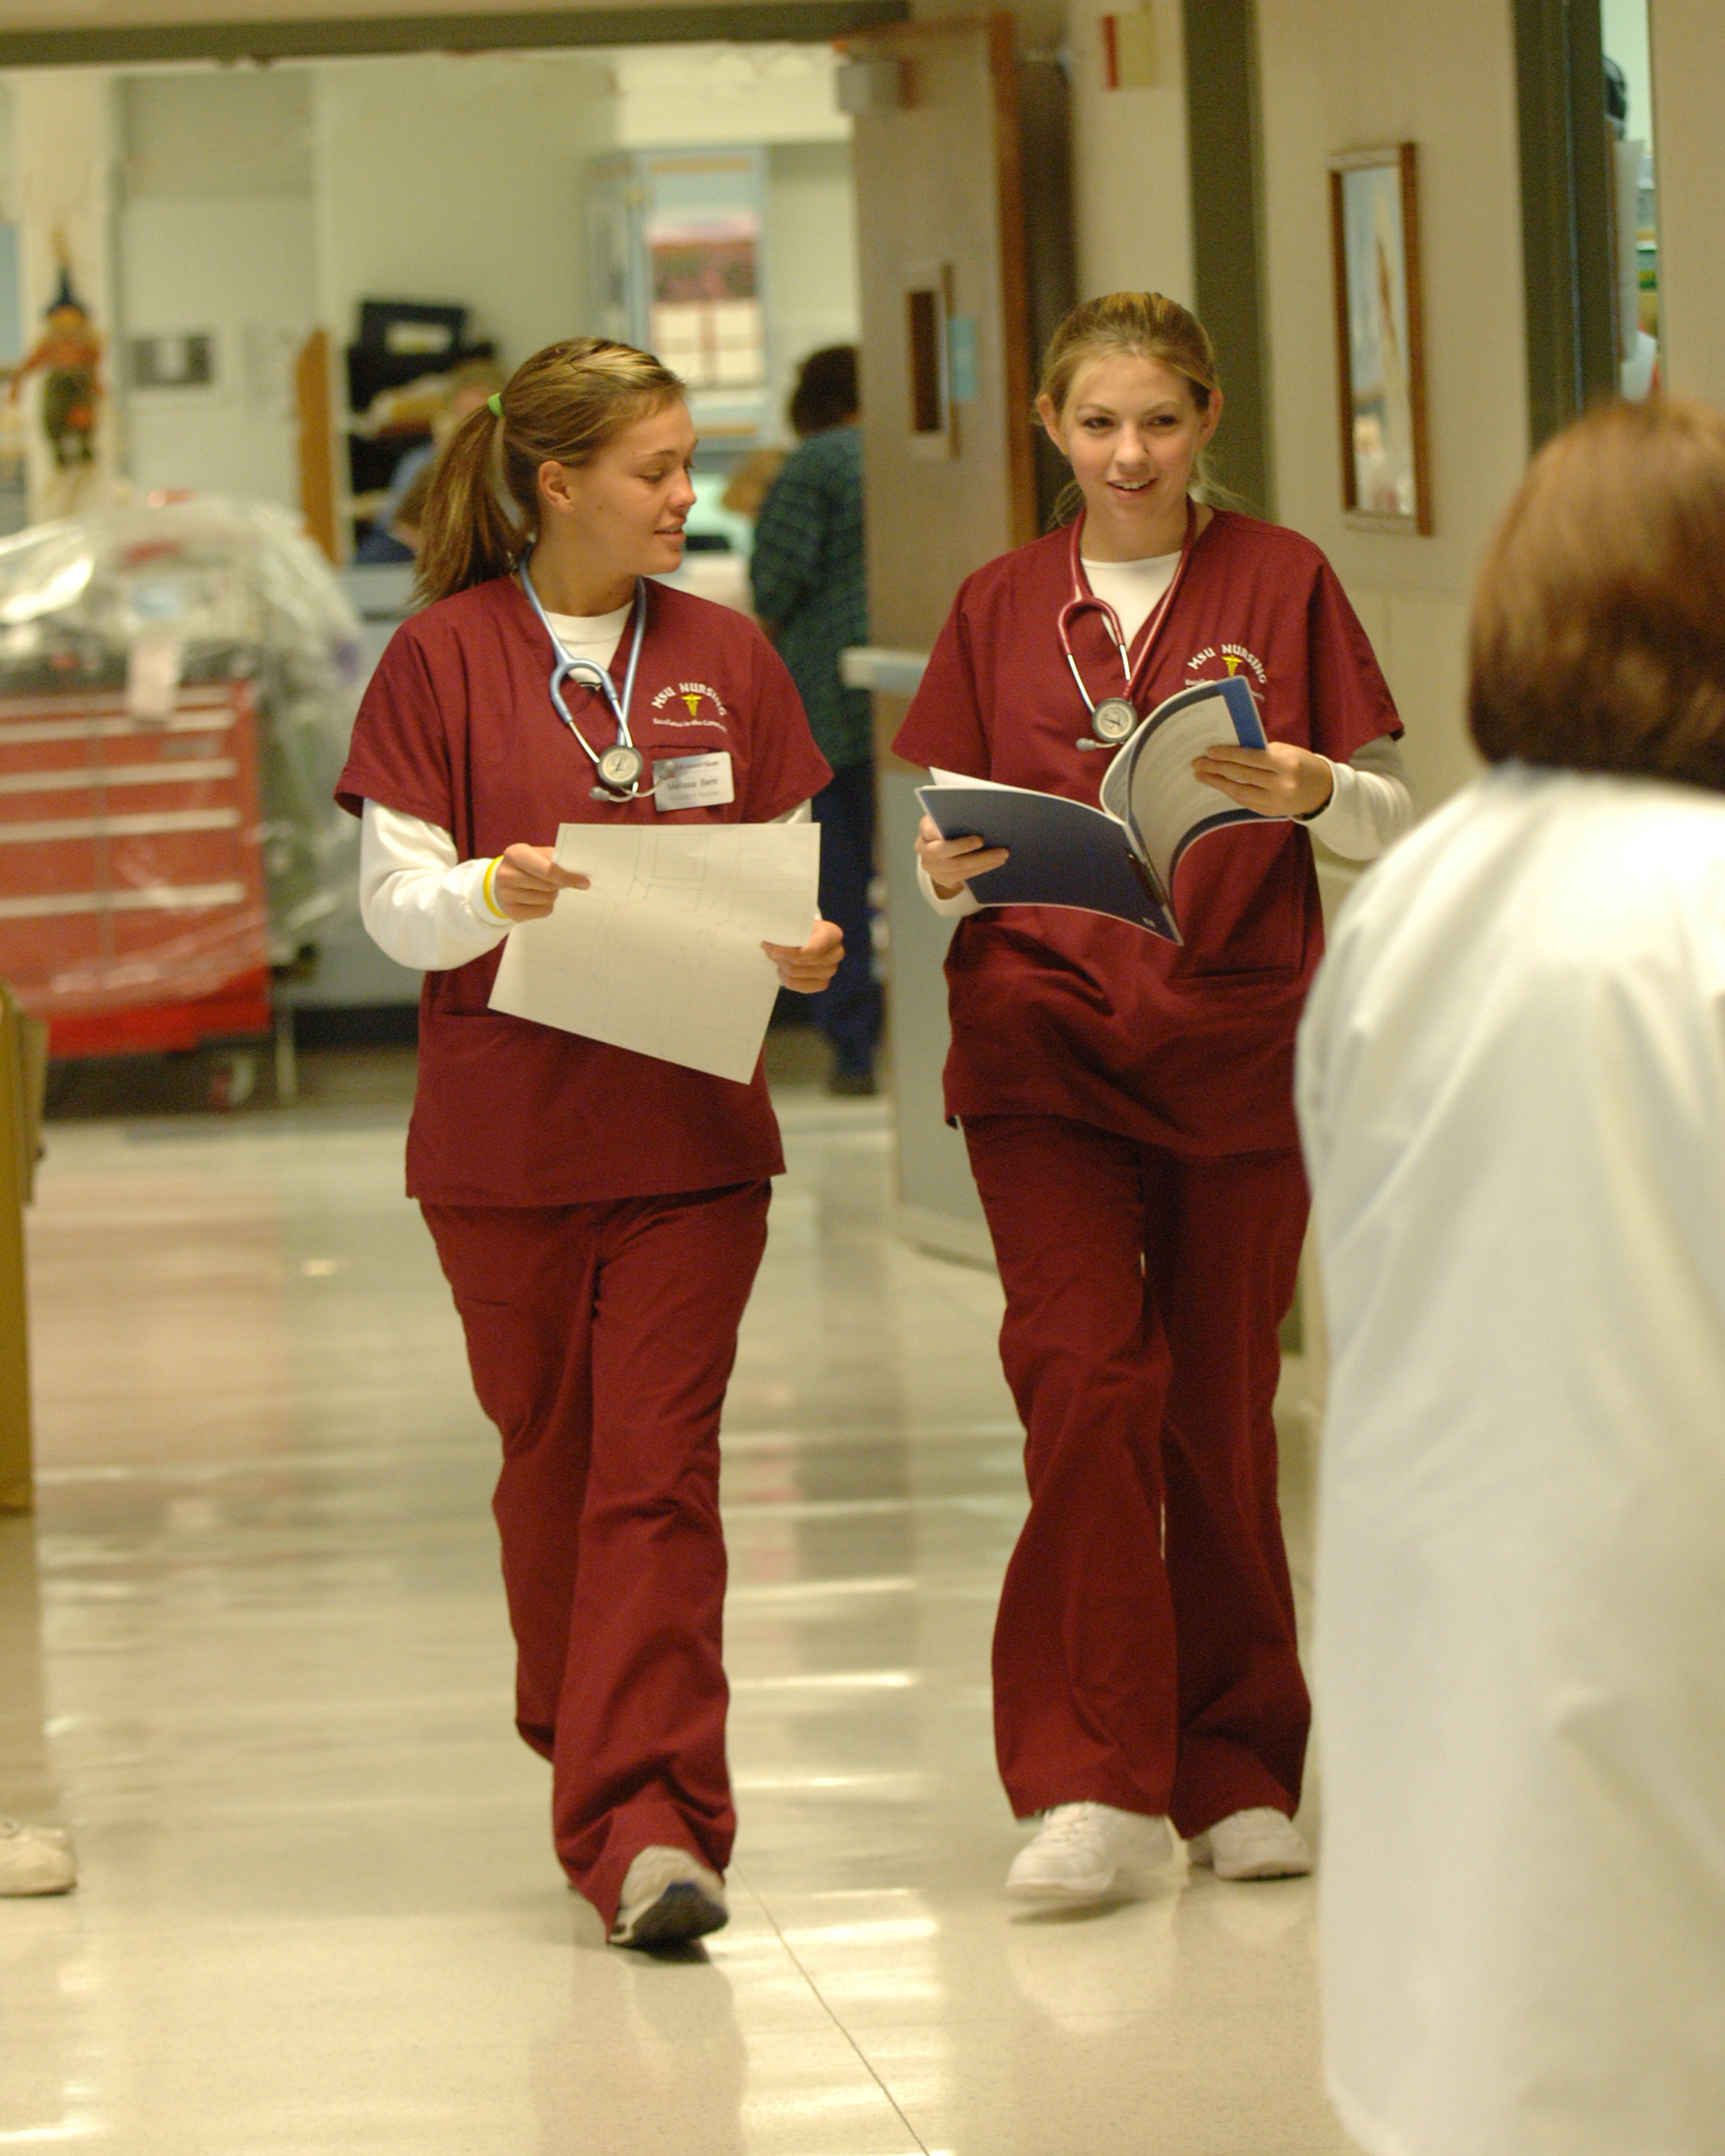 Nursing students in scrubs walk down a clinical hallway together